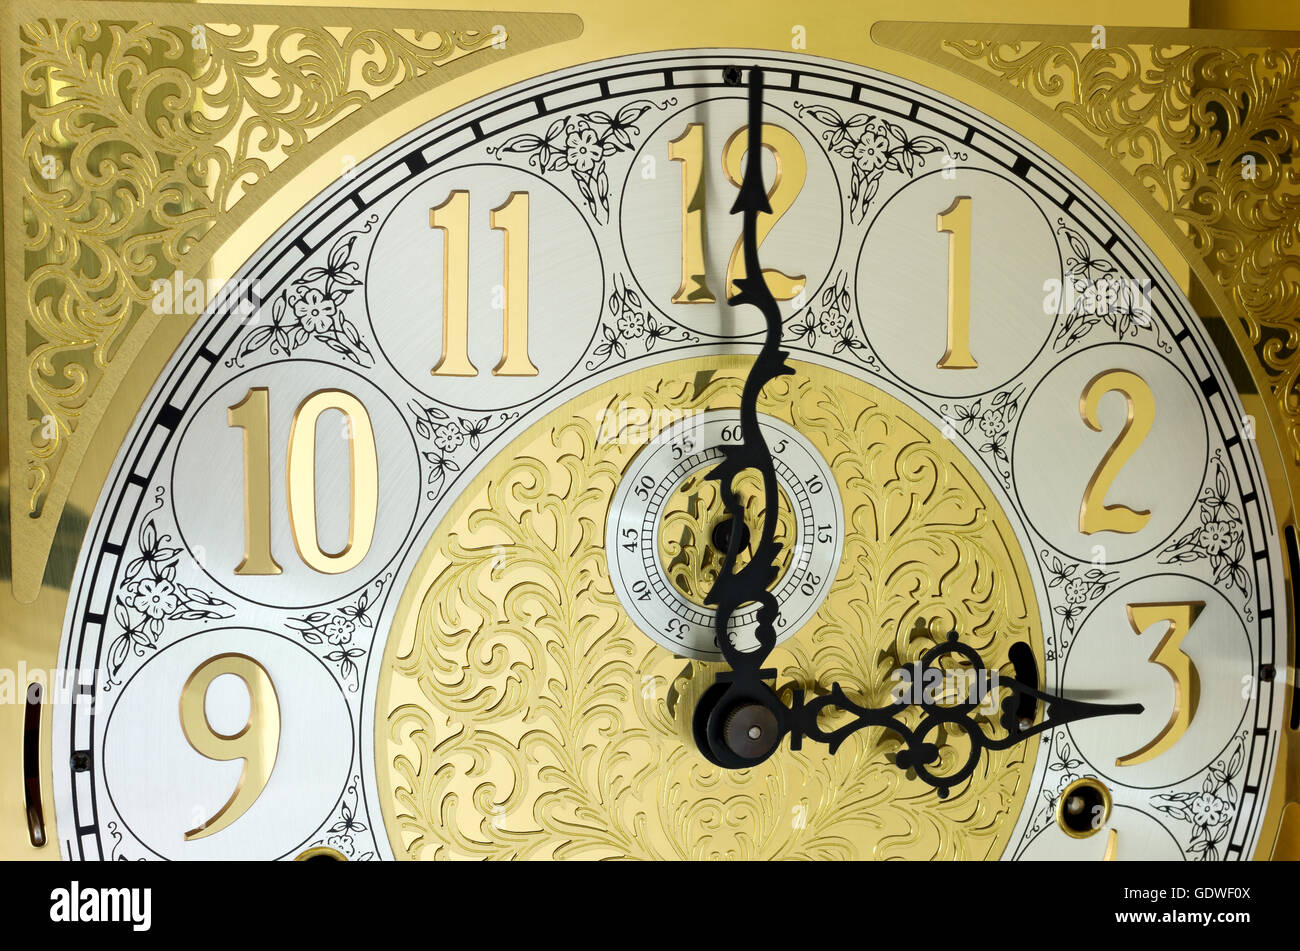 grandfather clock midnight clipart. ornate brass engraved grandfather clock face with arabic numerals and hands on three ou0027clock midnight clipart